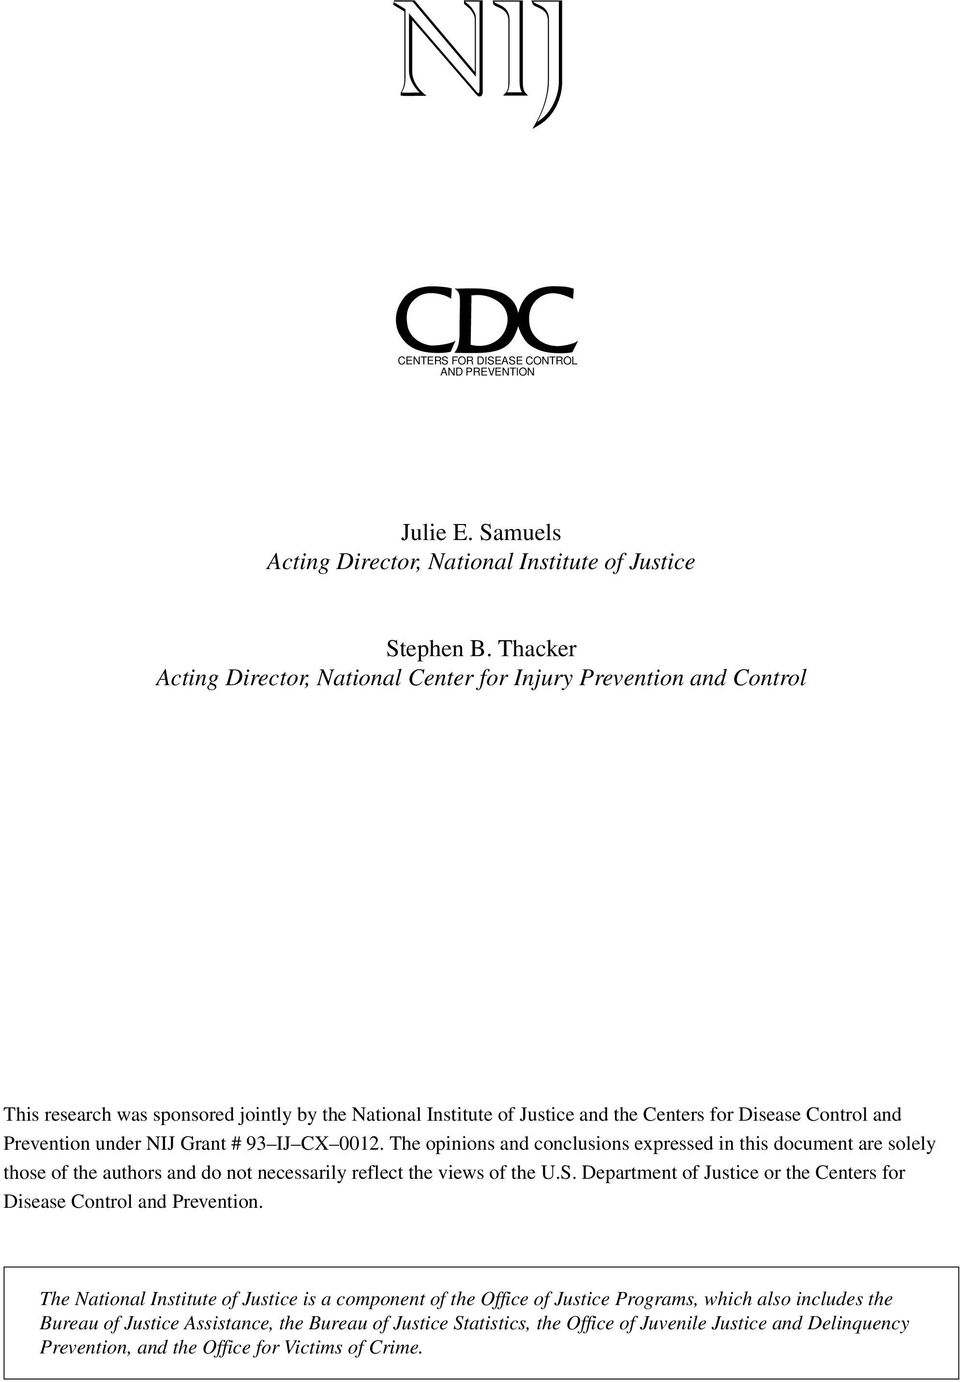 under NIJ Grant # 93 IJ CX 0012. The opinions and conclusions expressed in this document are solely those of the authors and do not necessarily reflect the views of the U.S.